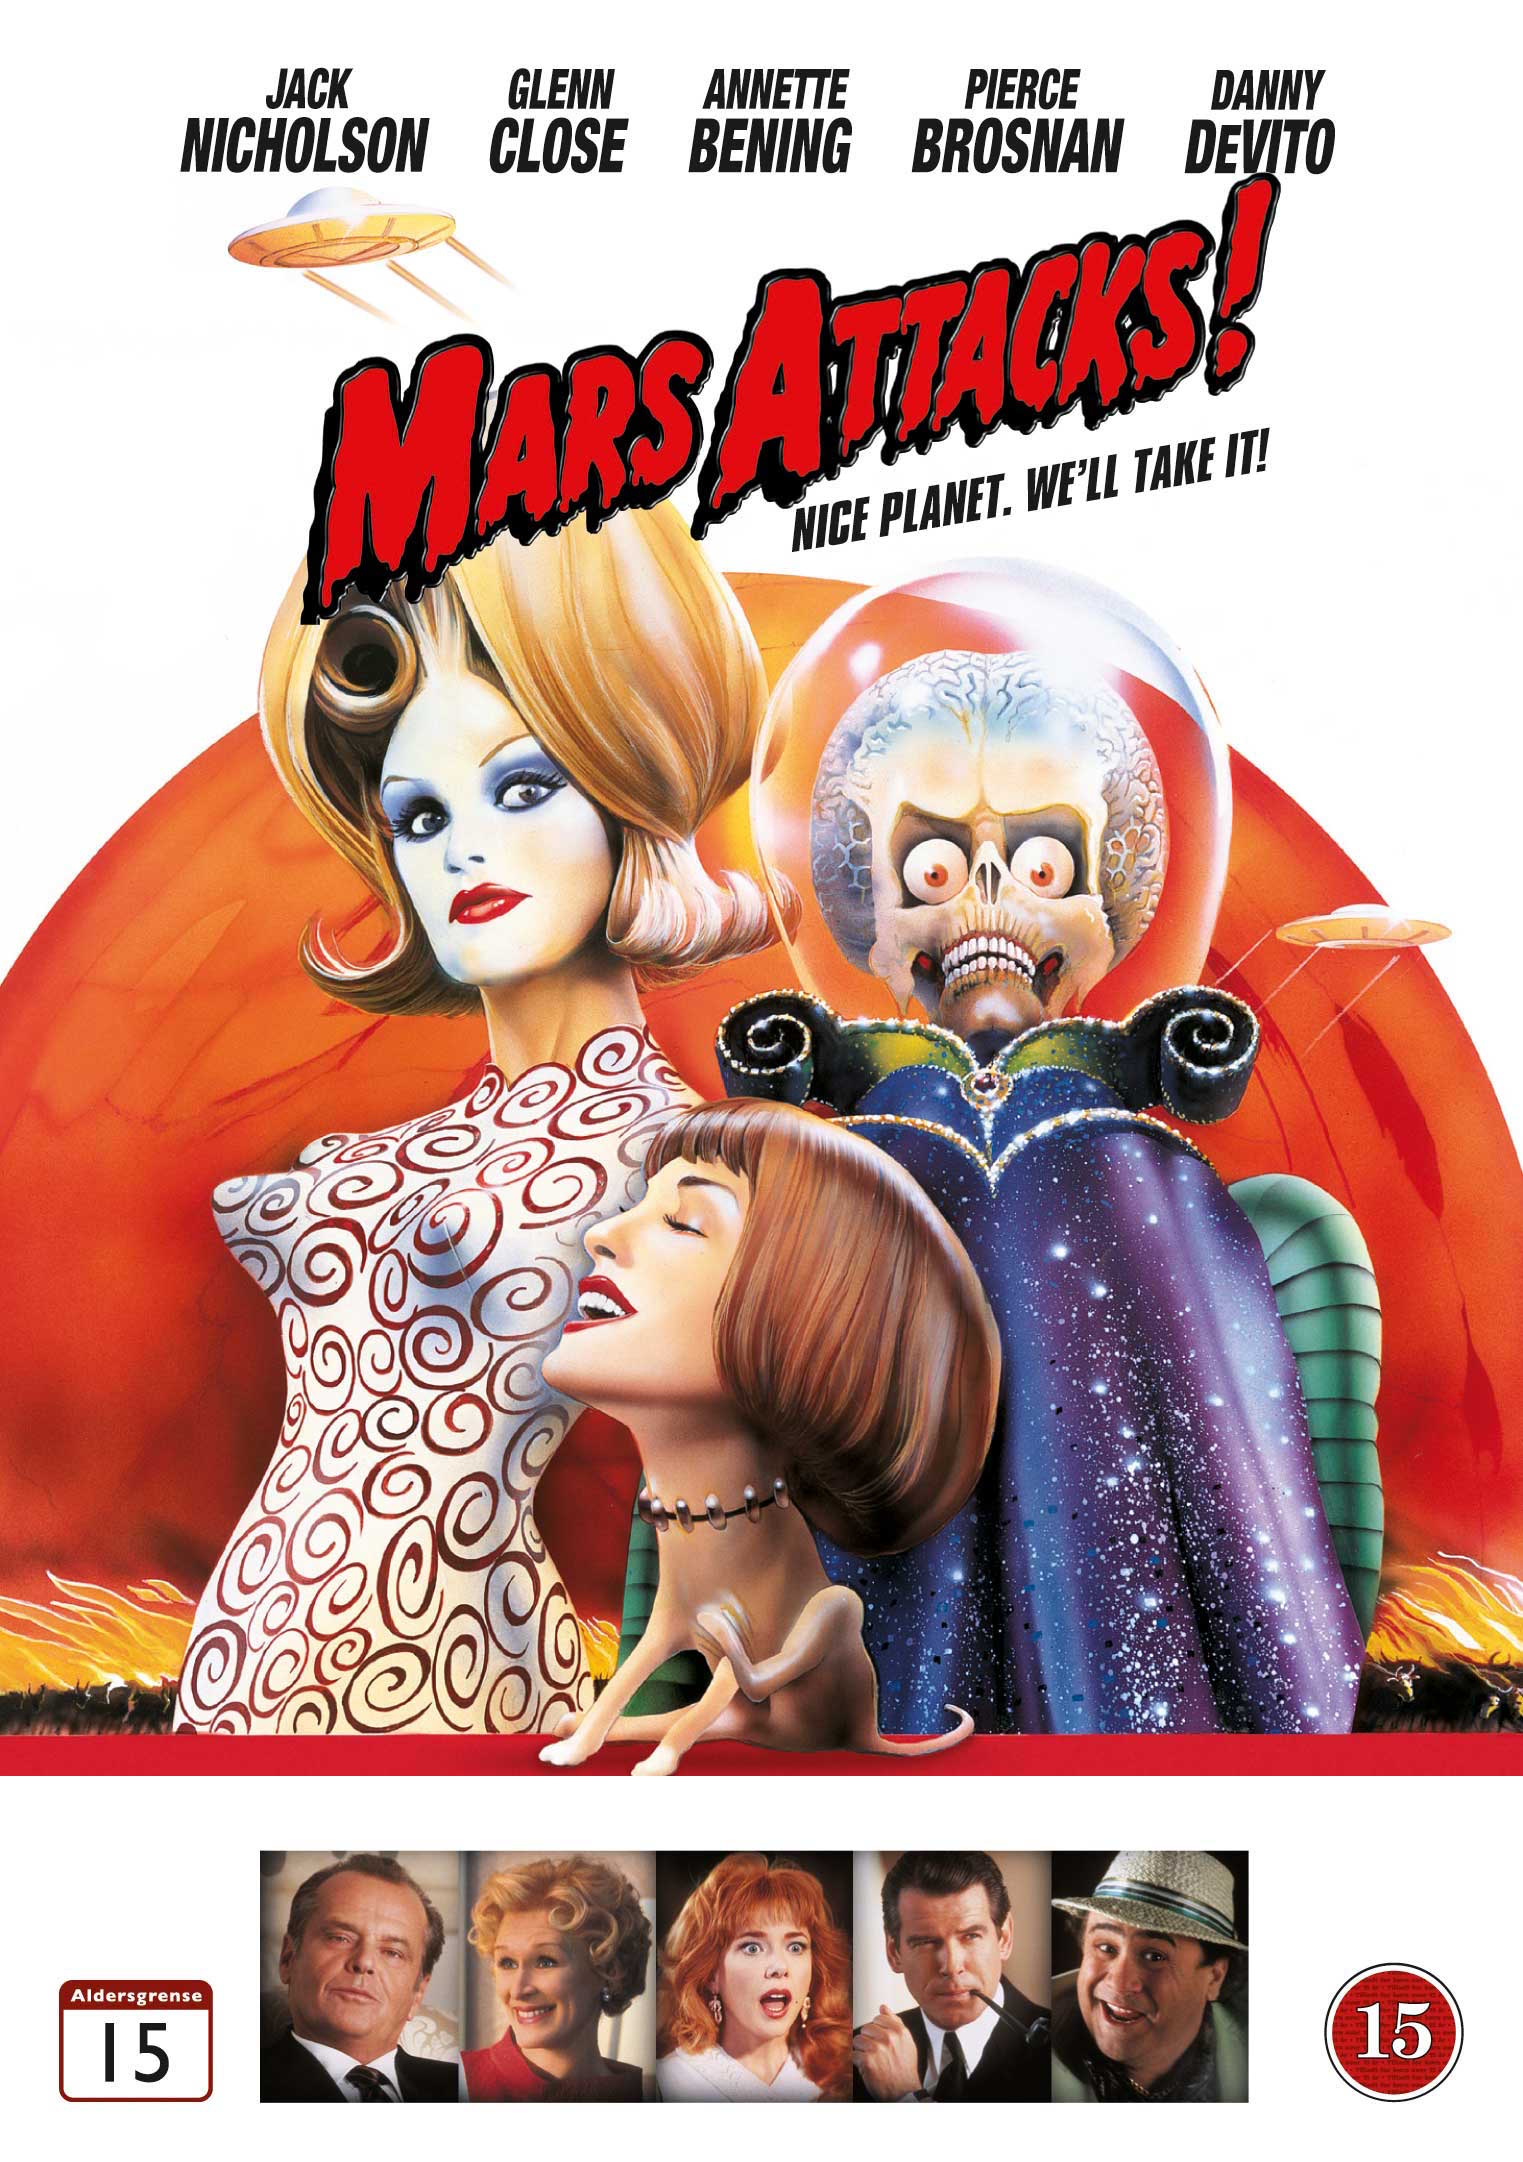 Mars attacks burton